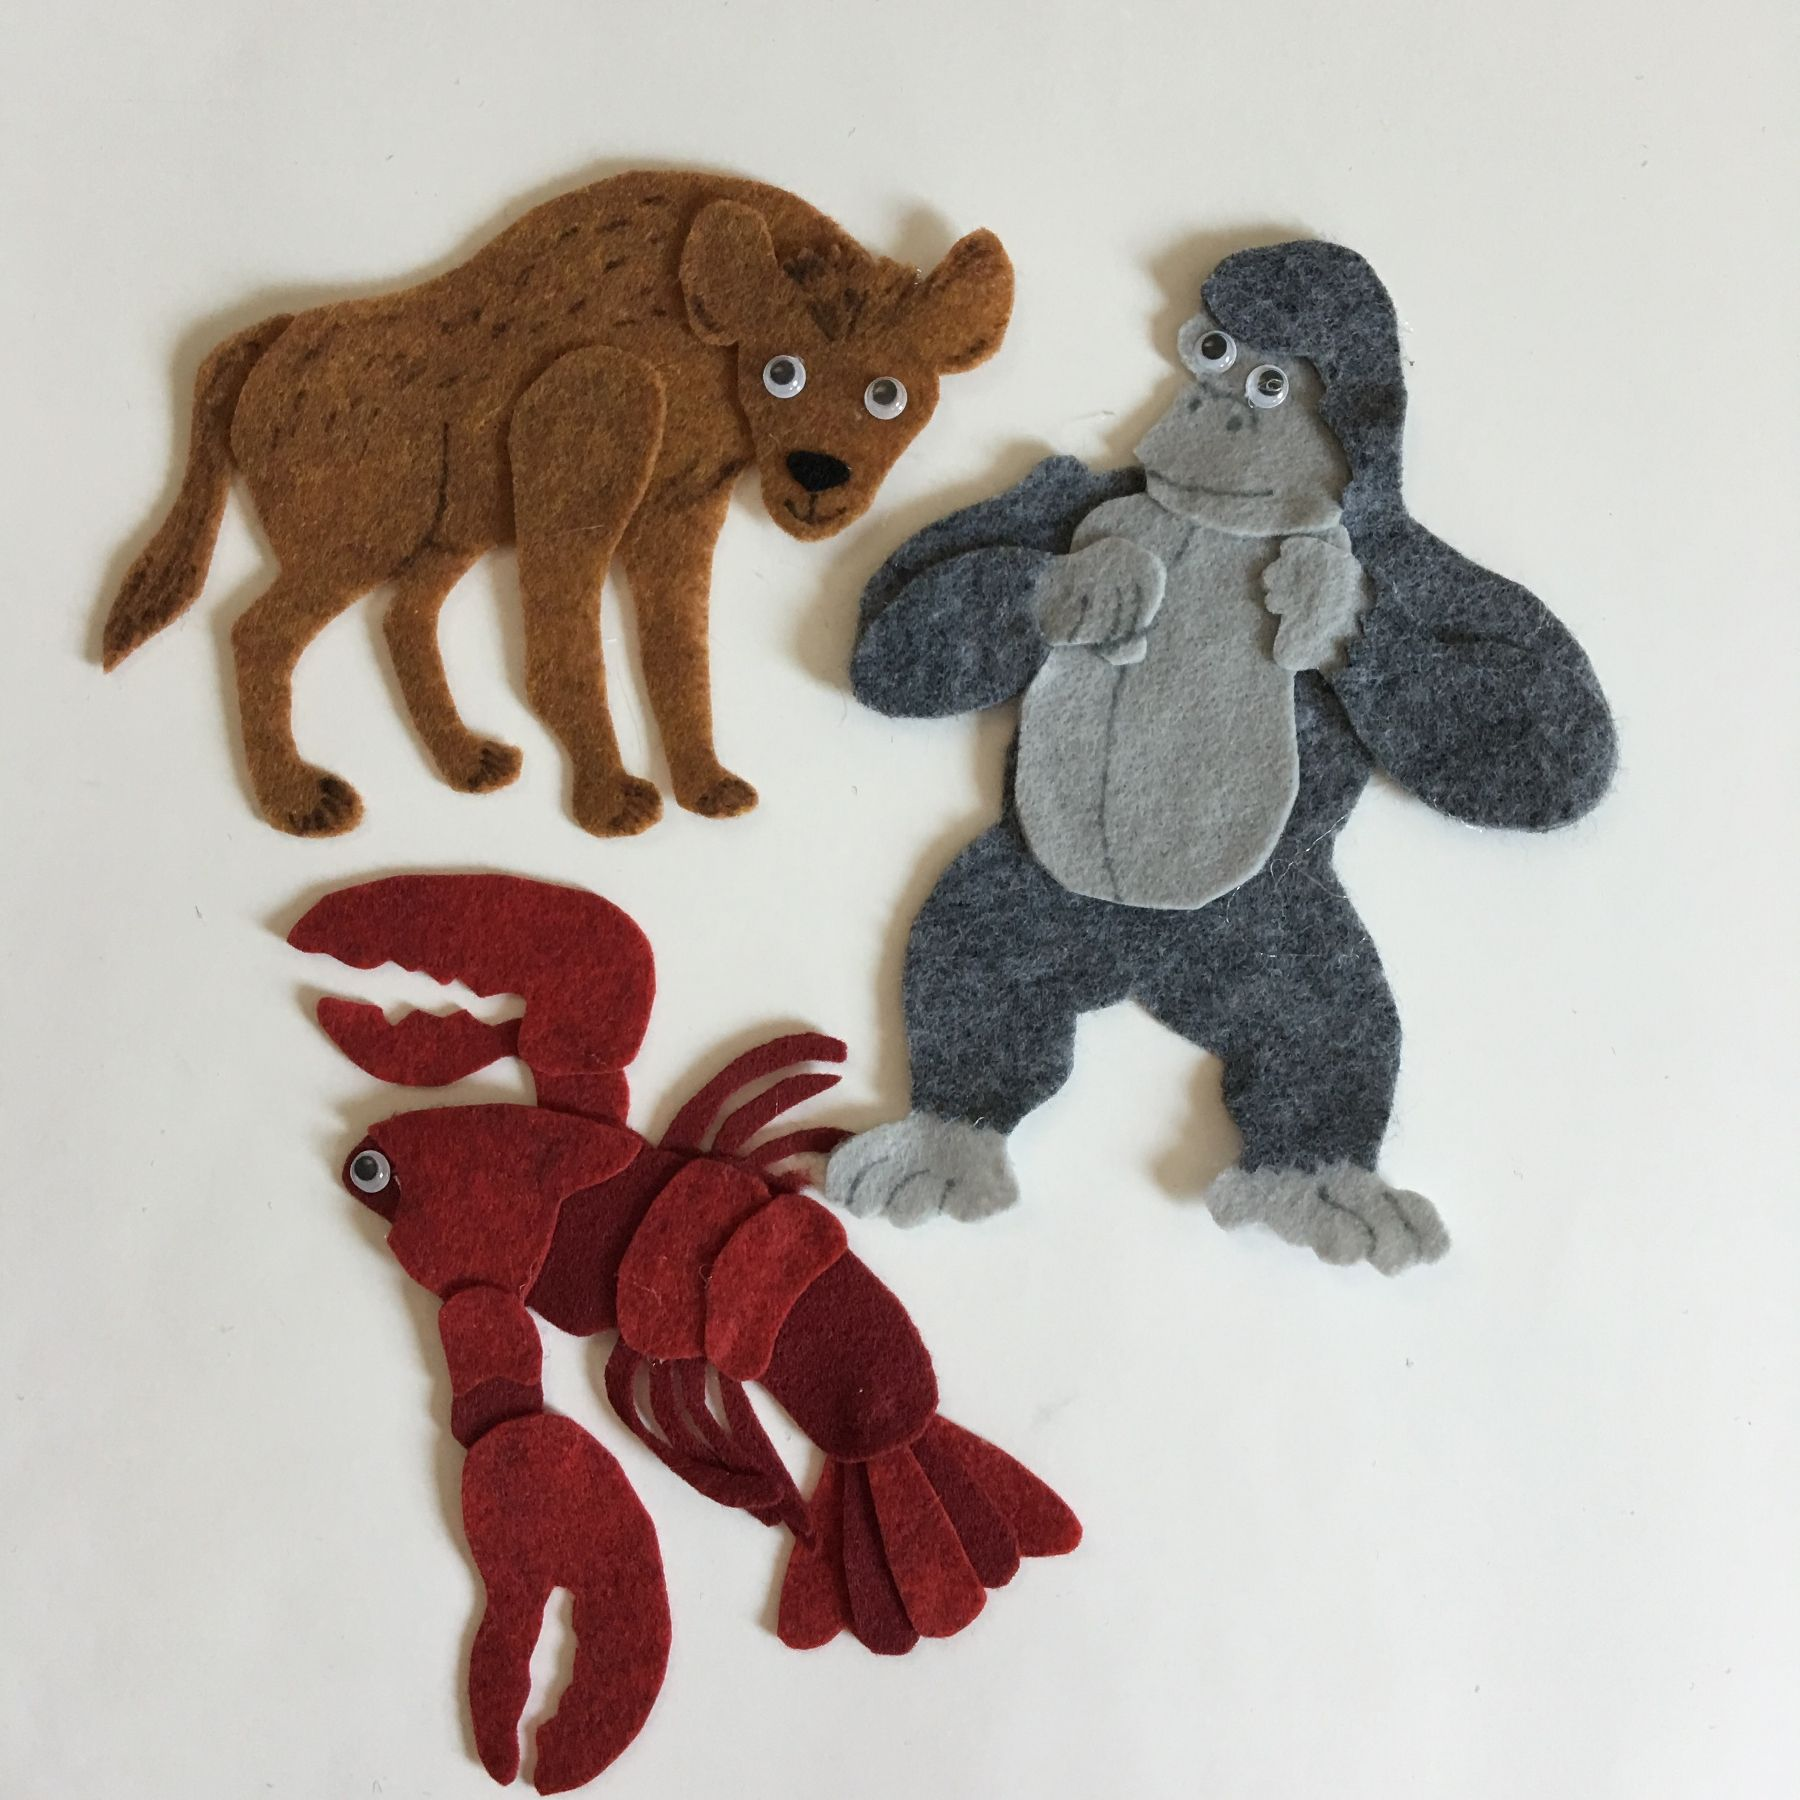 Grouchy Ladybug Pattern For Felt Story Board Includes